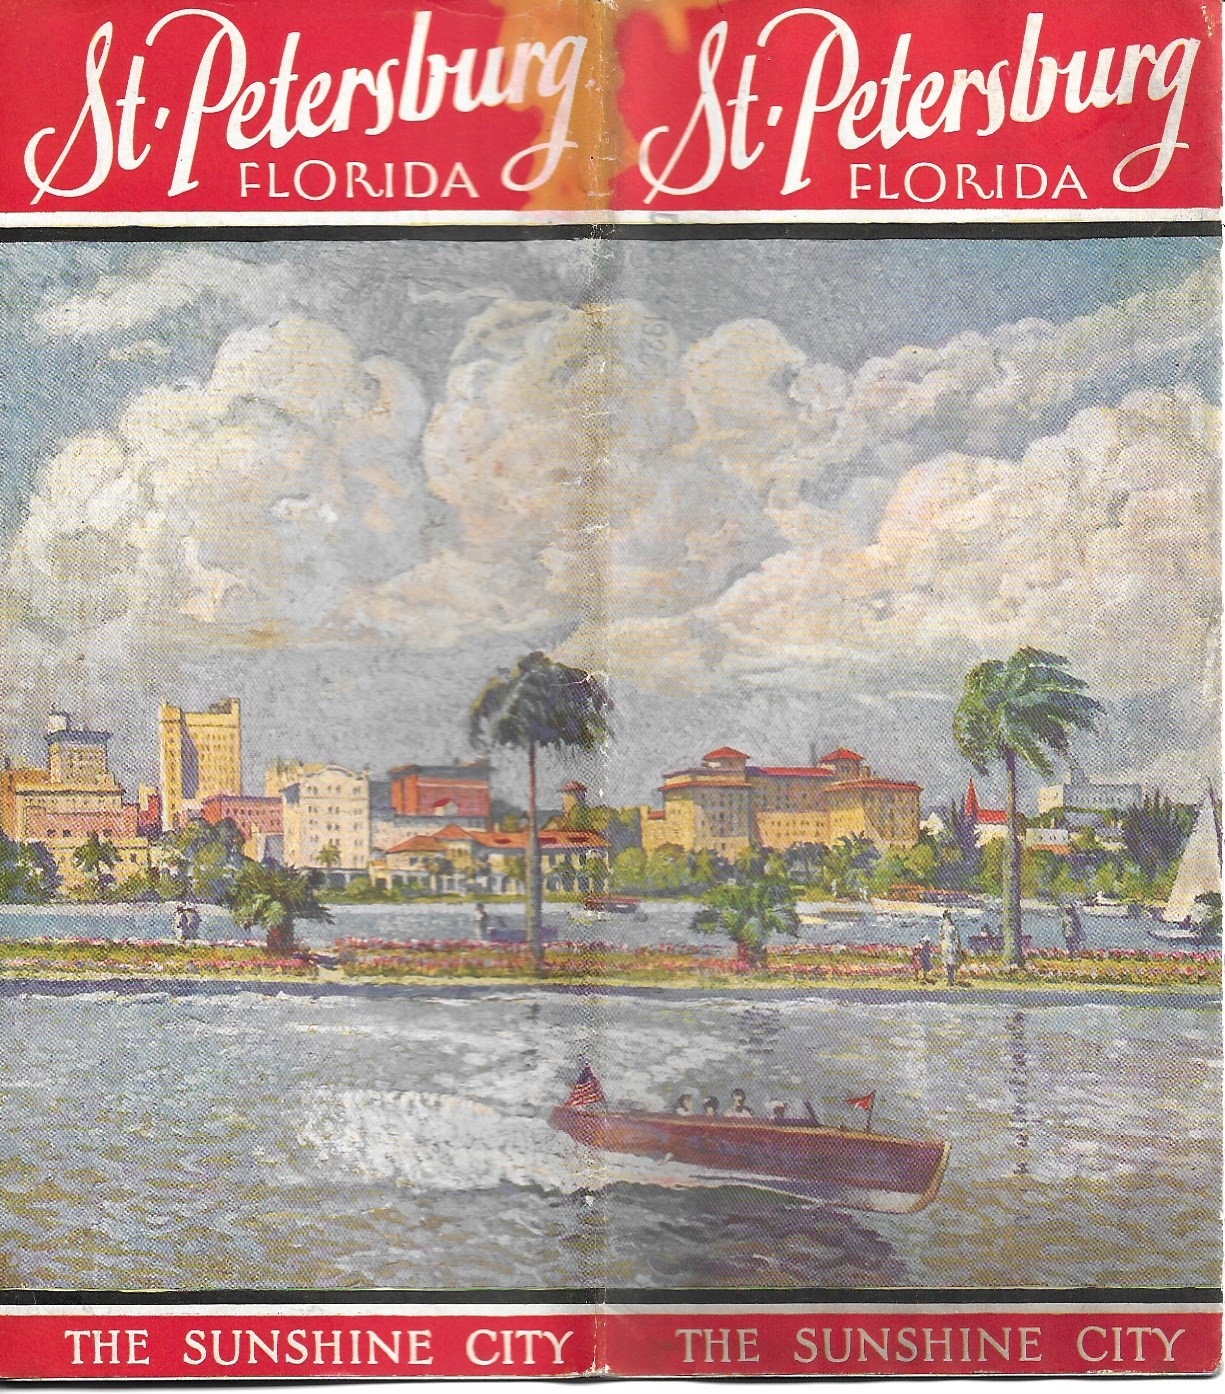 Image for St. Petersberg Florida, The Sunshine City, Tourist Brochure, 1926